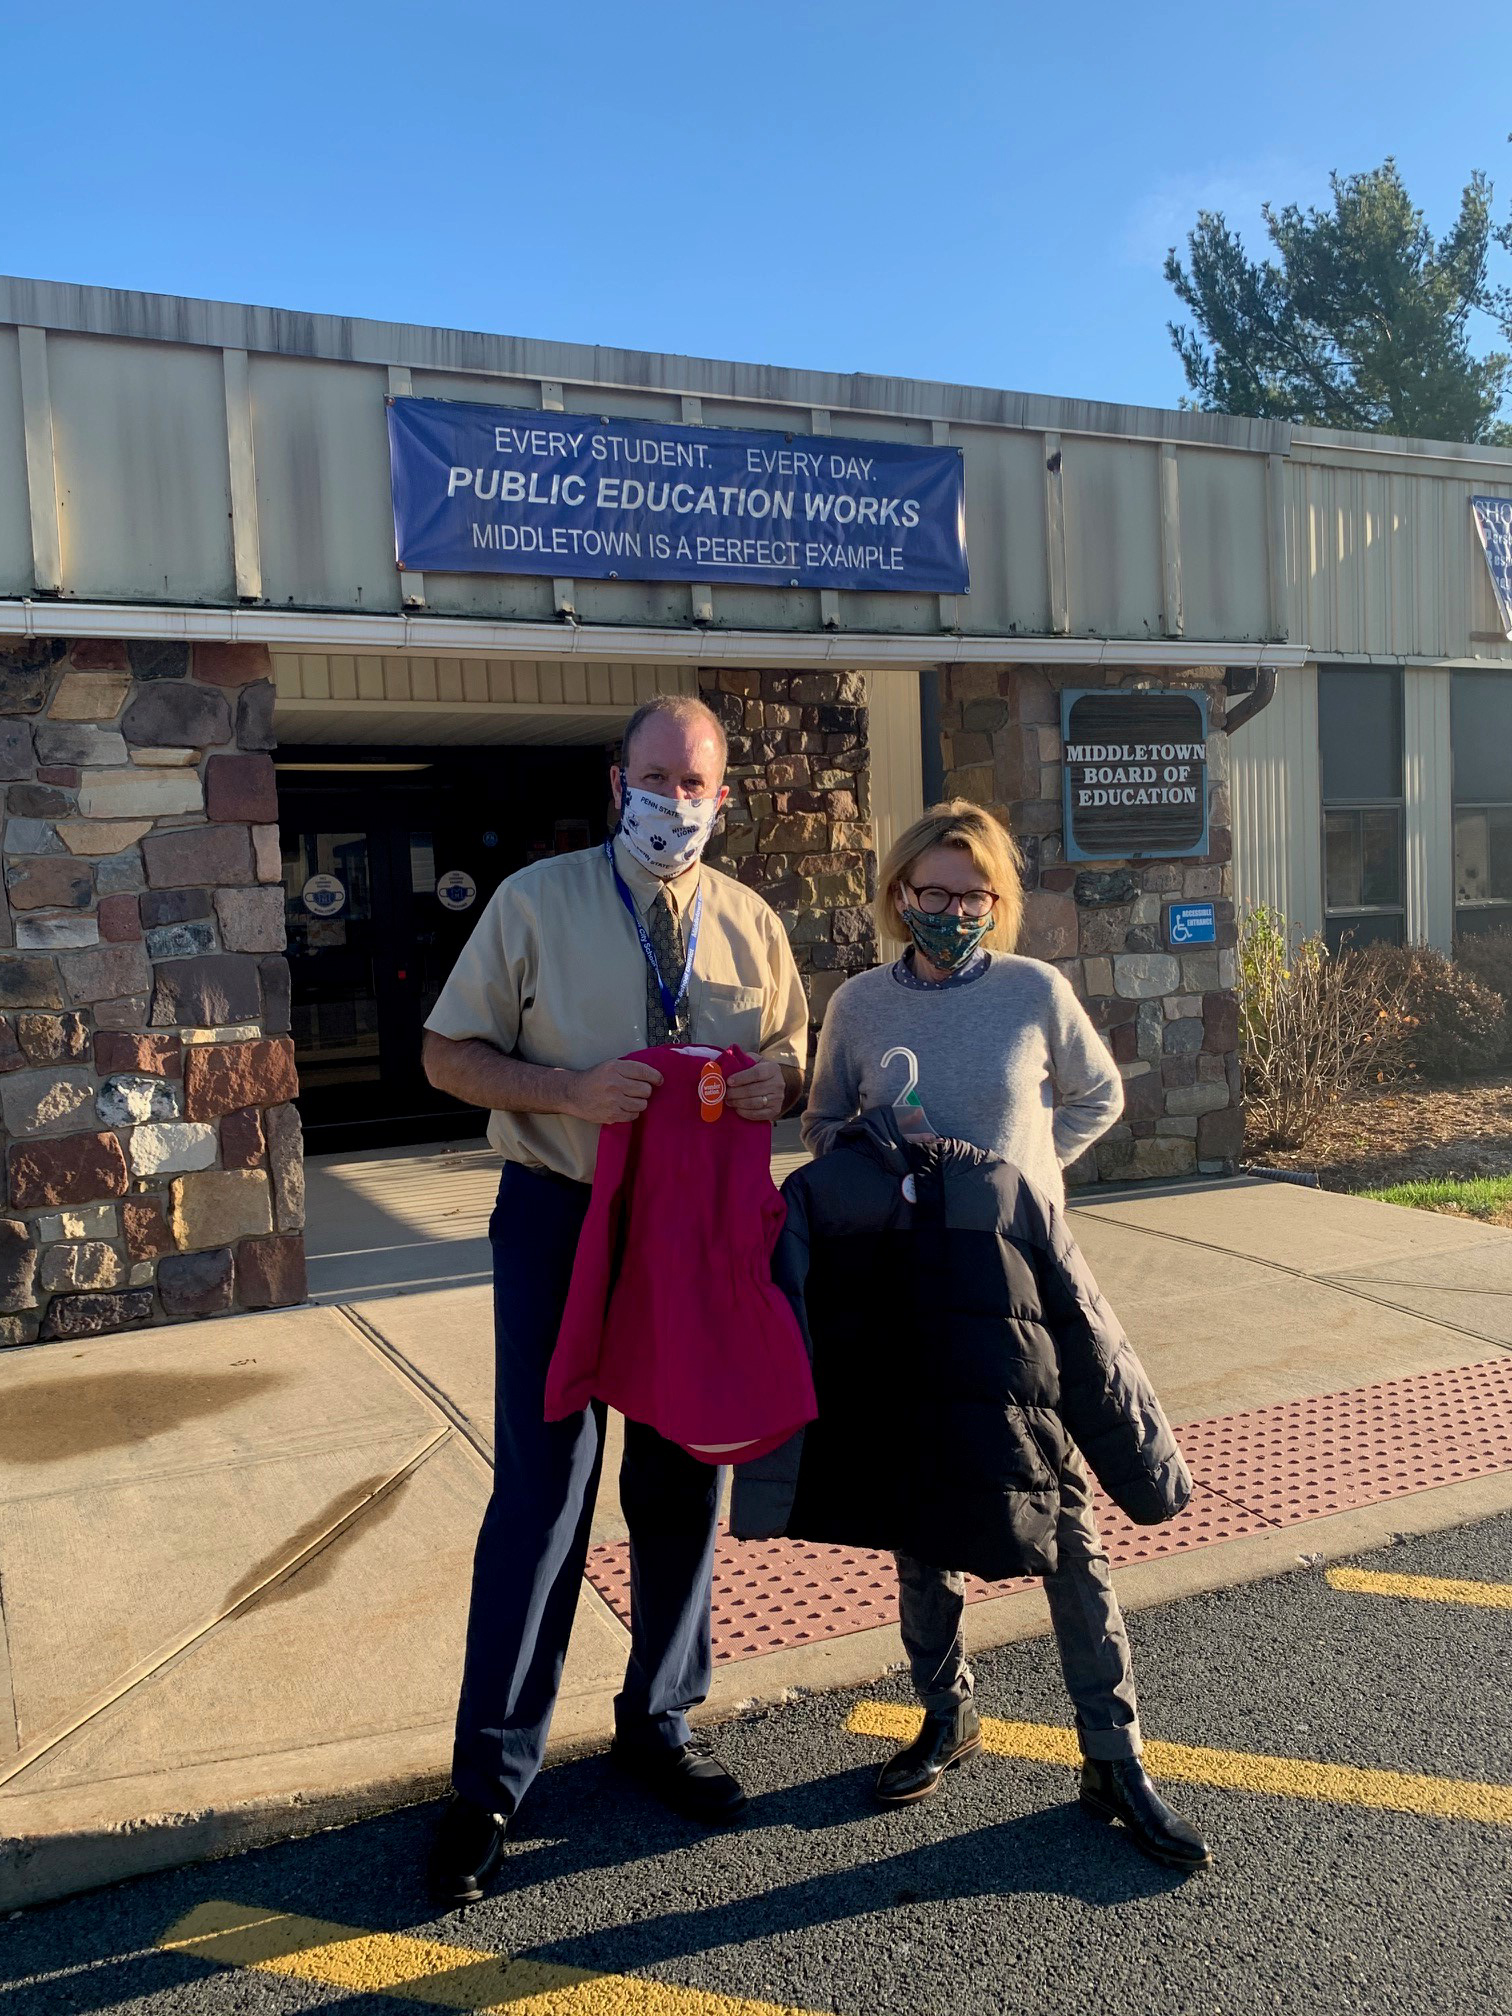 Today I had the privilege of delivering over 300 coats, boots, hats, and gloves to local school districts throughout the 100th District. This is an initiative that I have been doing for years. The pa